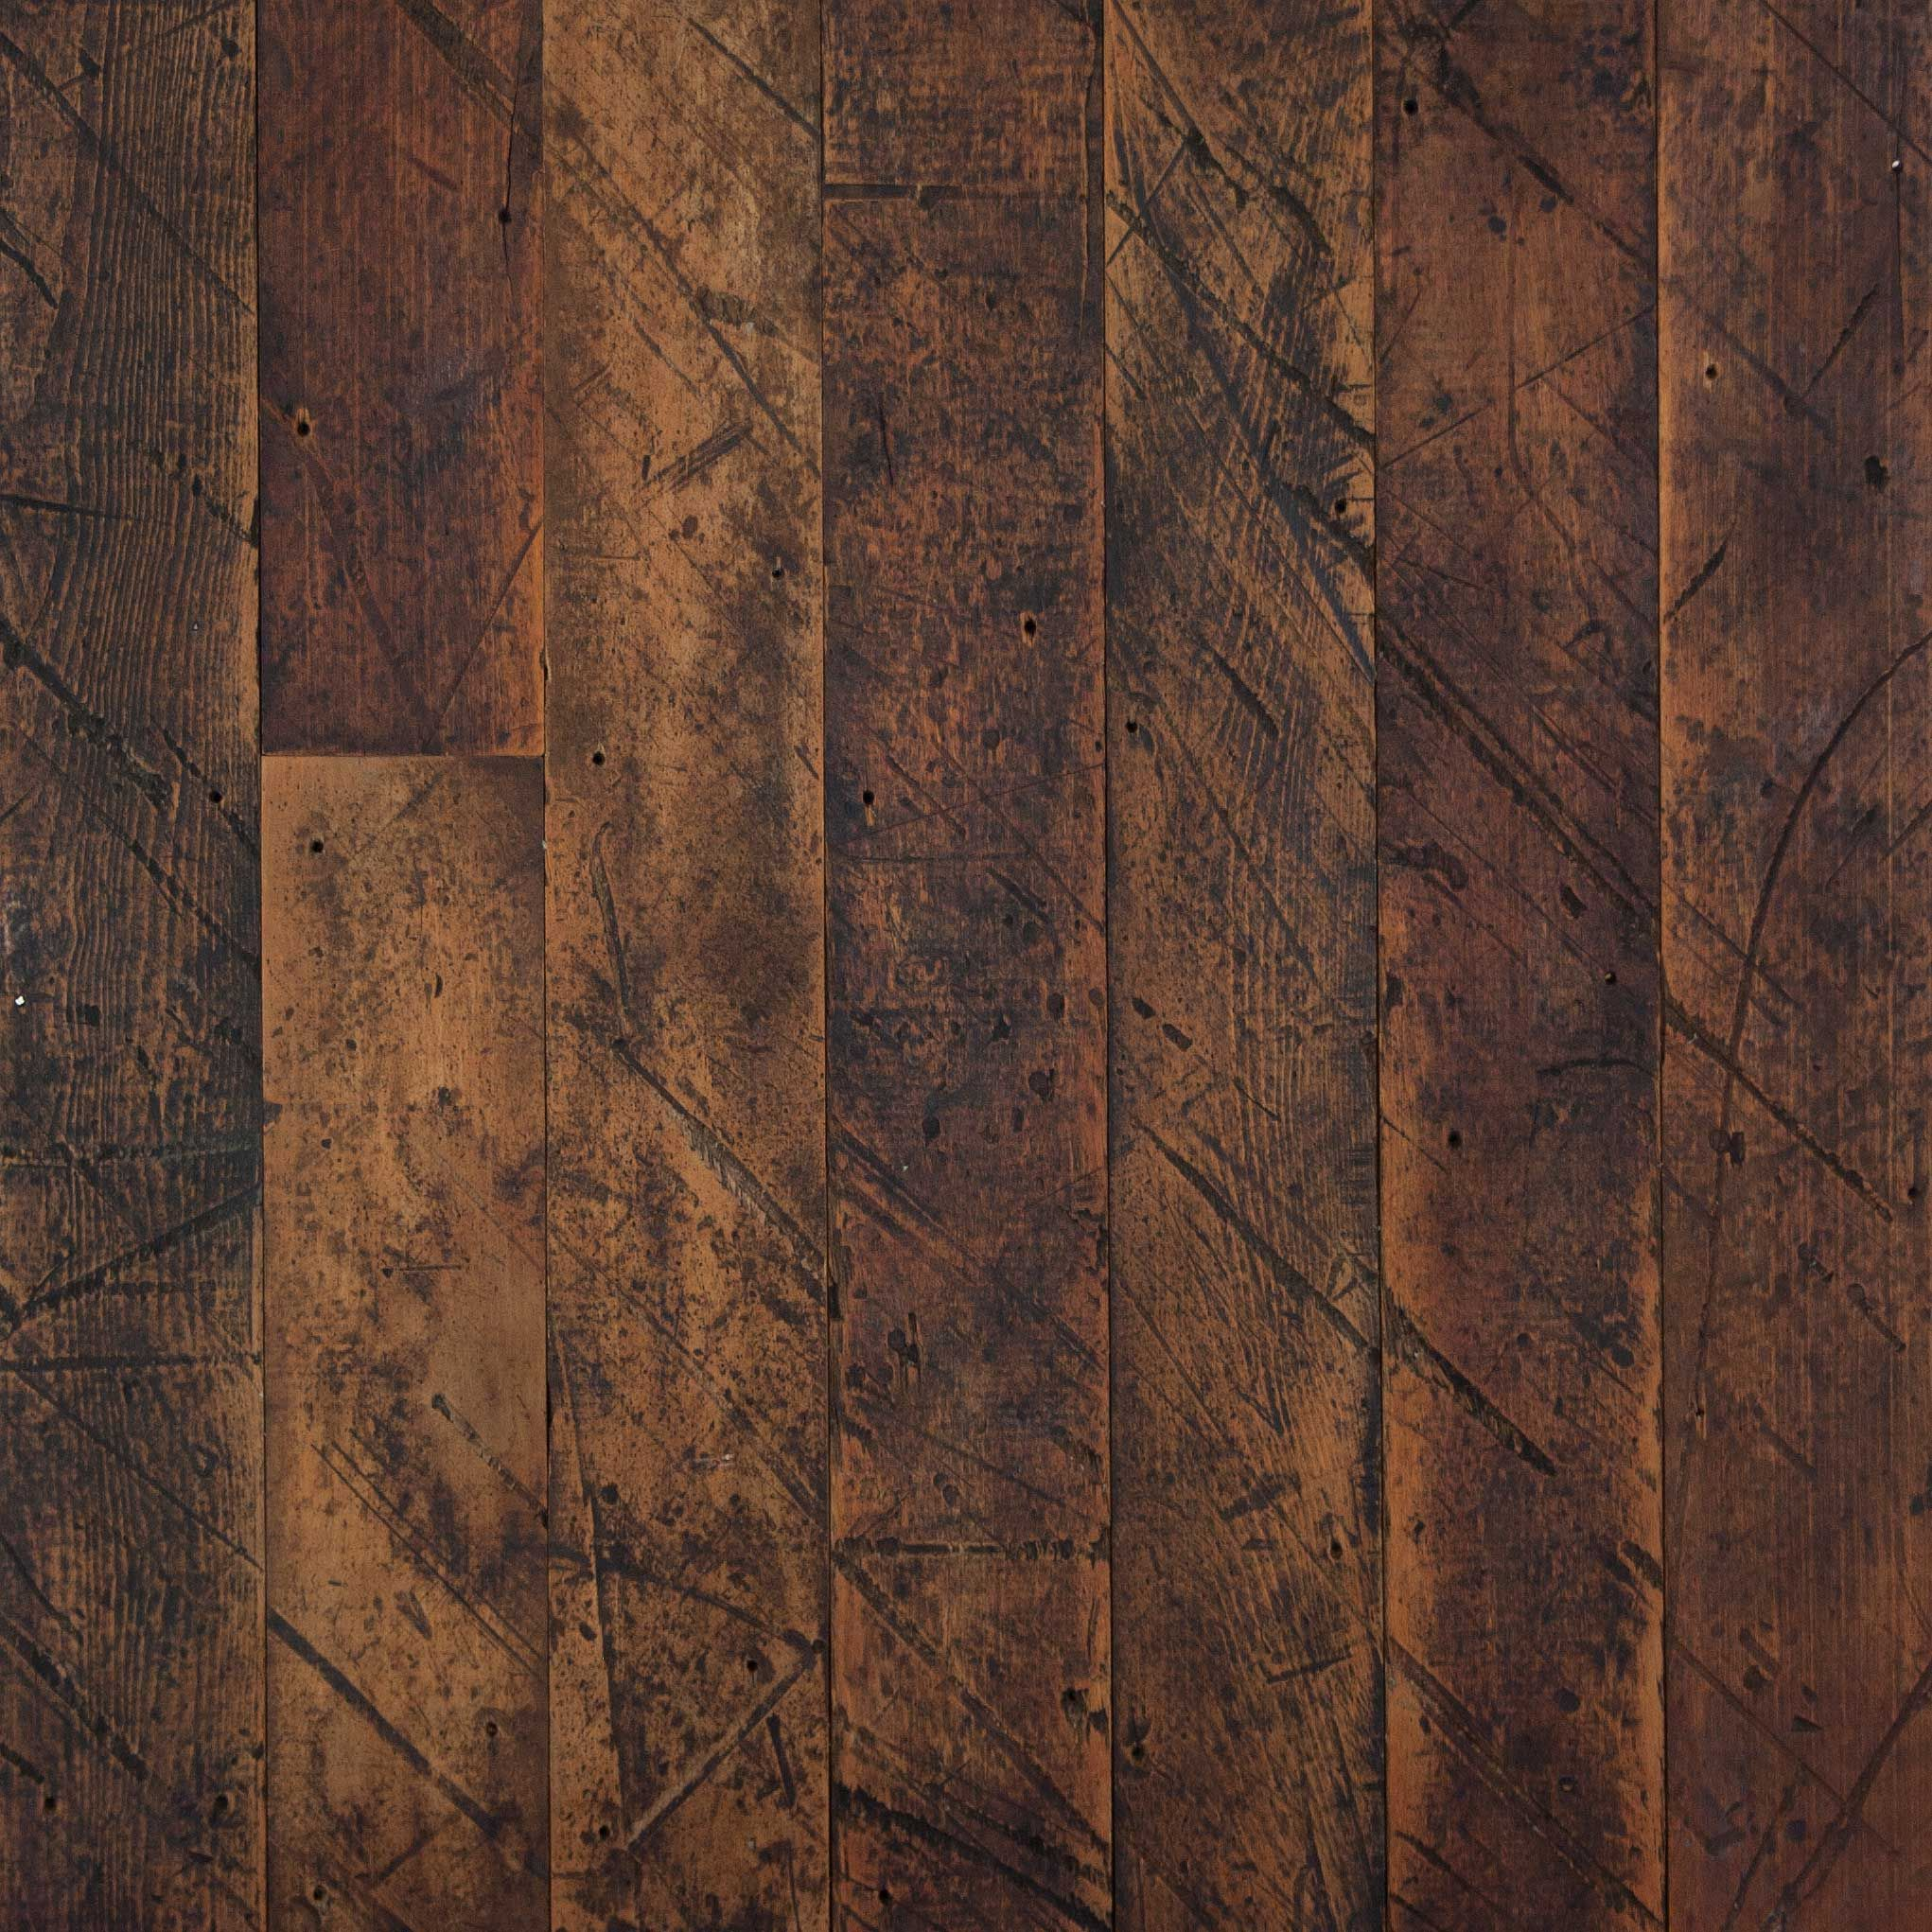 Longleaf lumber reclaimed factory maple flooring for Recycled hardwood